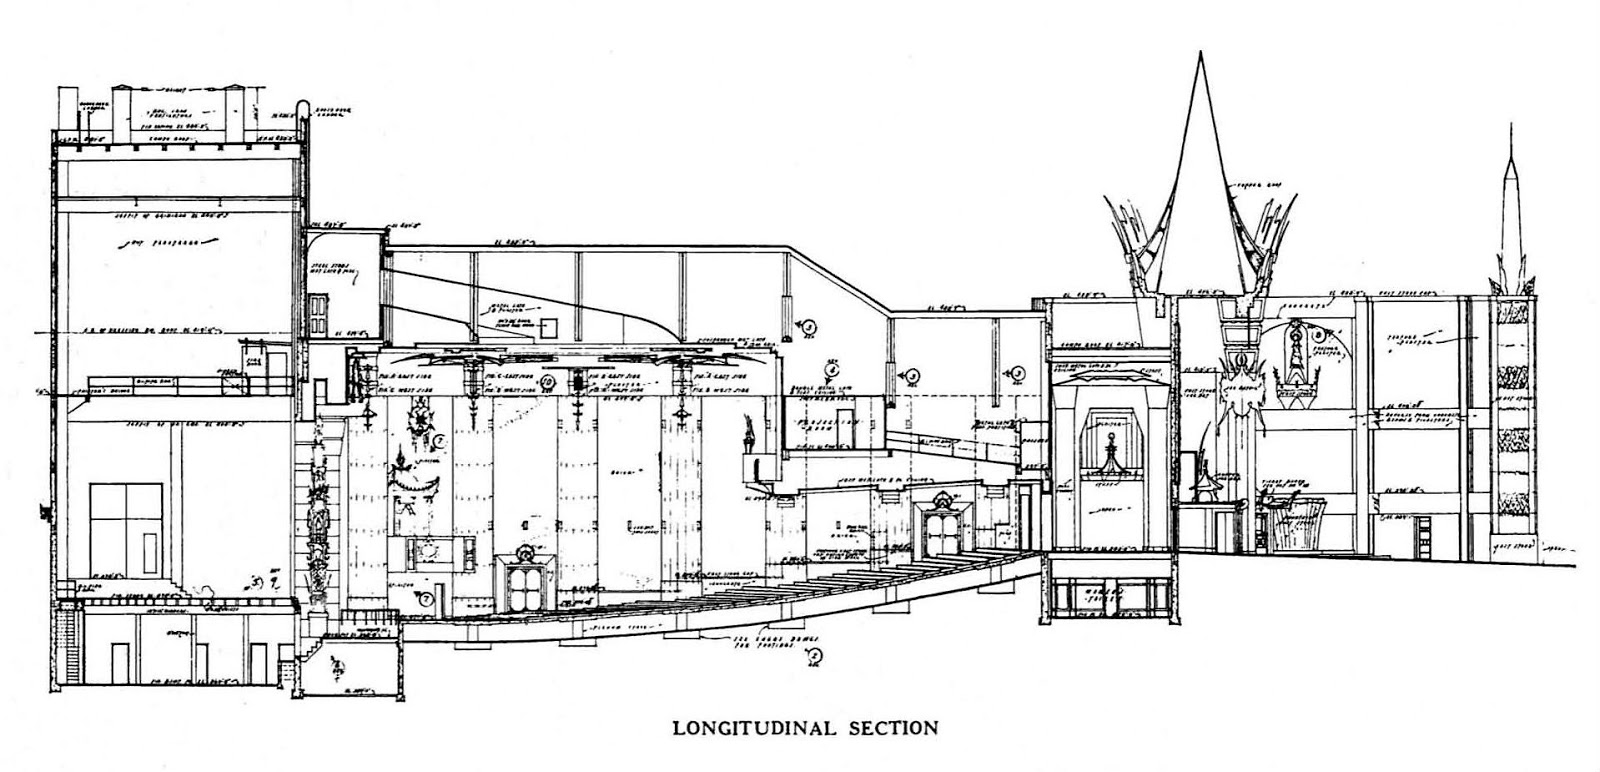 a section view of the theatre from volume 1 of american theatres of today 1927 by r f sexton and b f betts